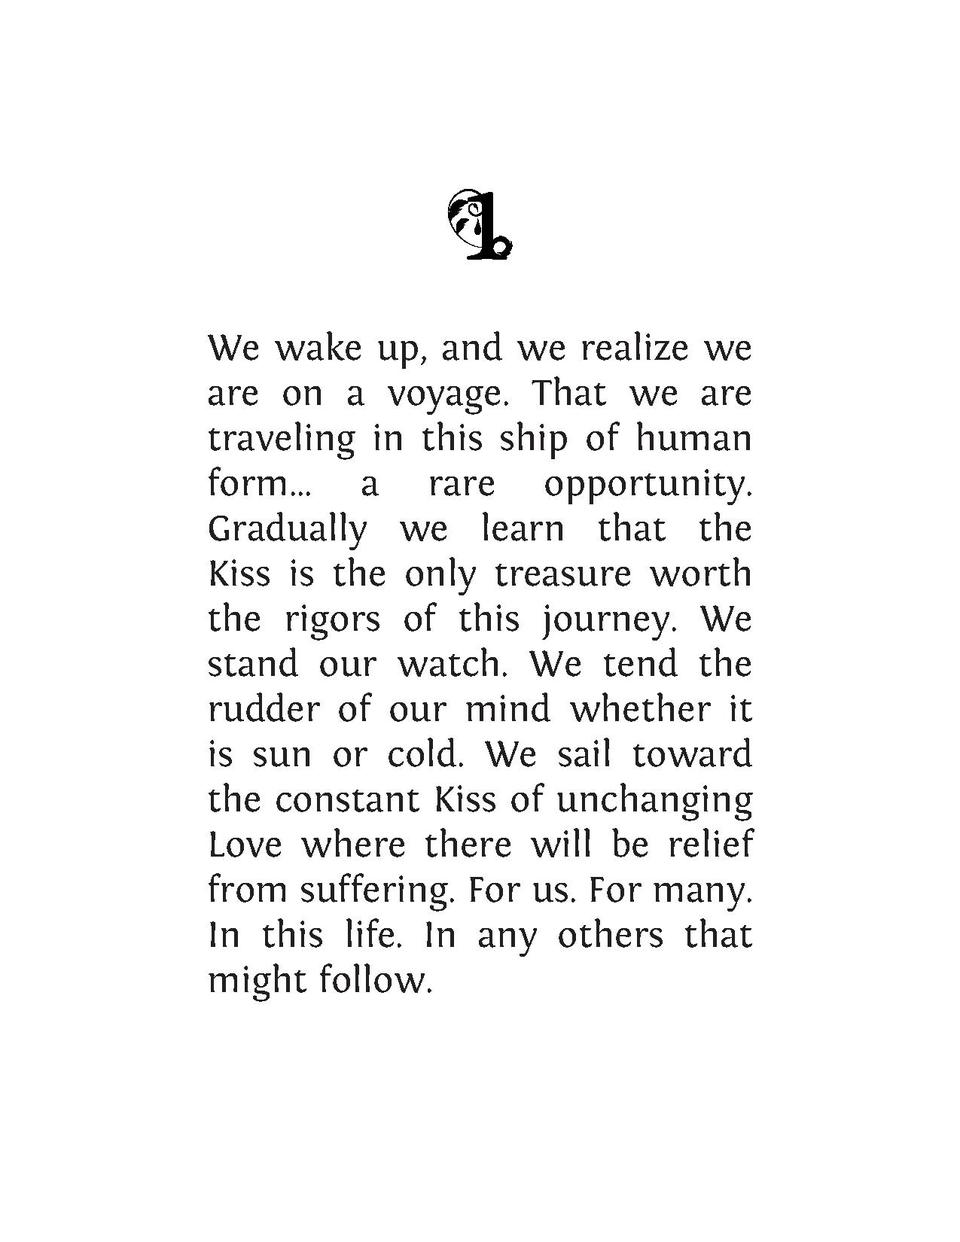 We wake up, and we realize we are on a voyage. That we are traveling in this ship of human form... a rare opportunity. Gra...